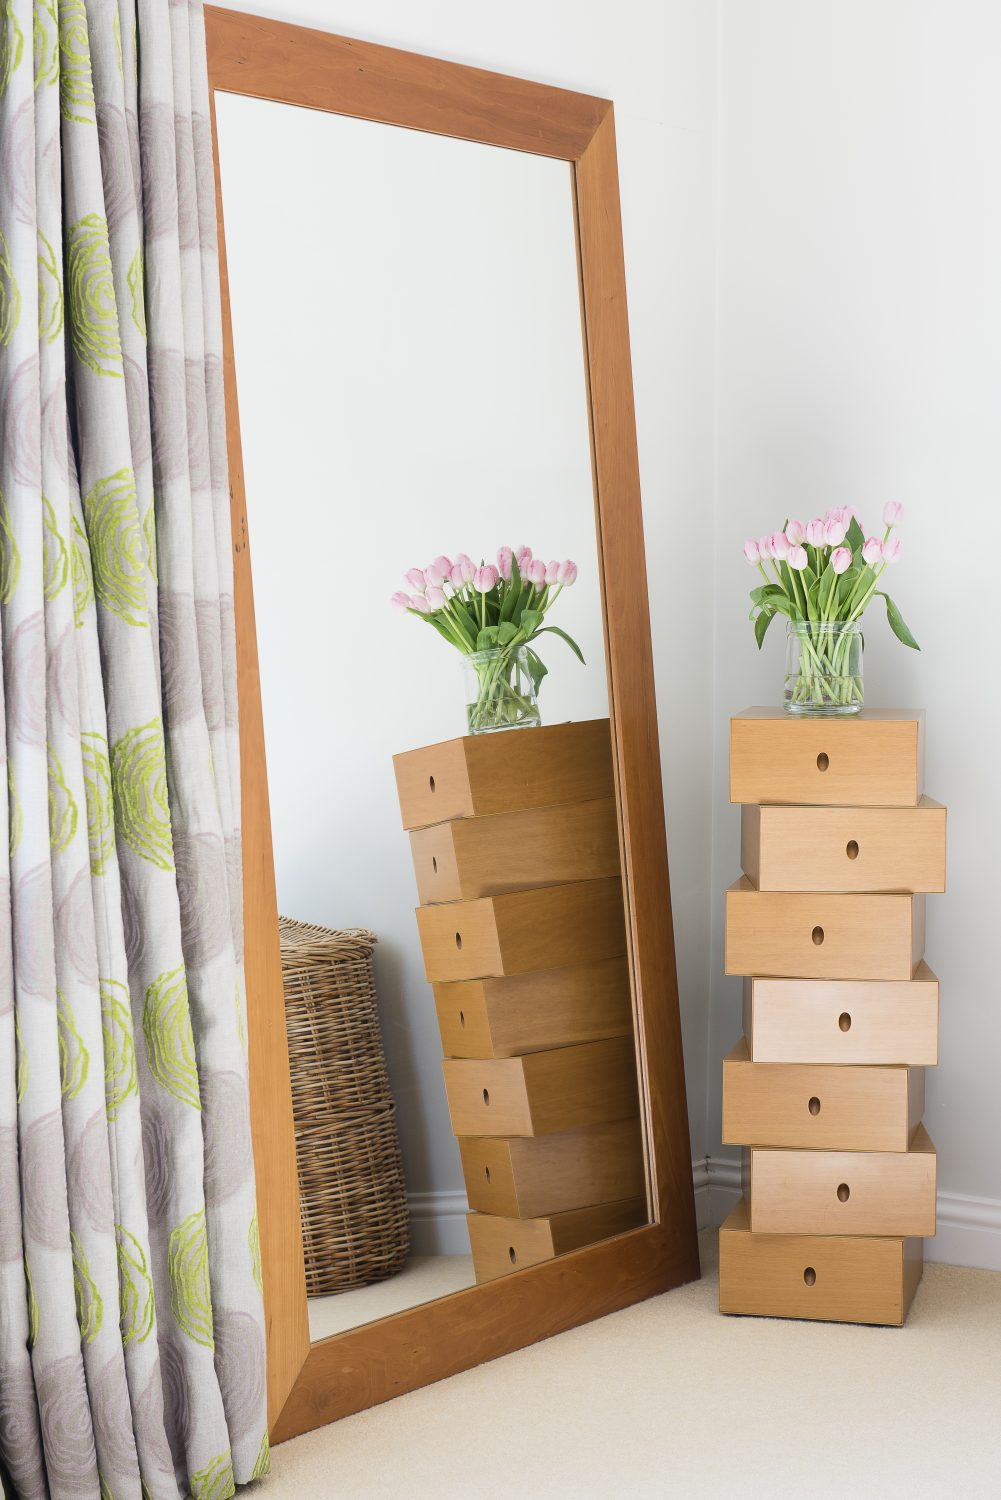 The 'stacked' drawers unit is from The Conran Shop